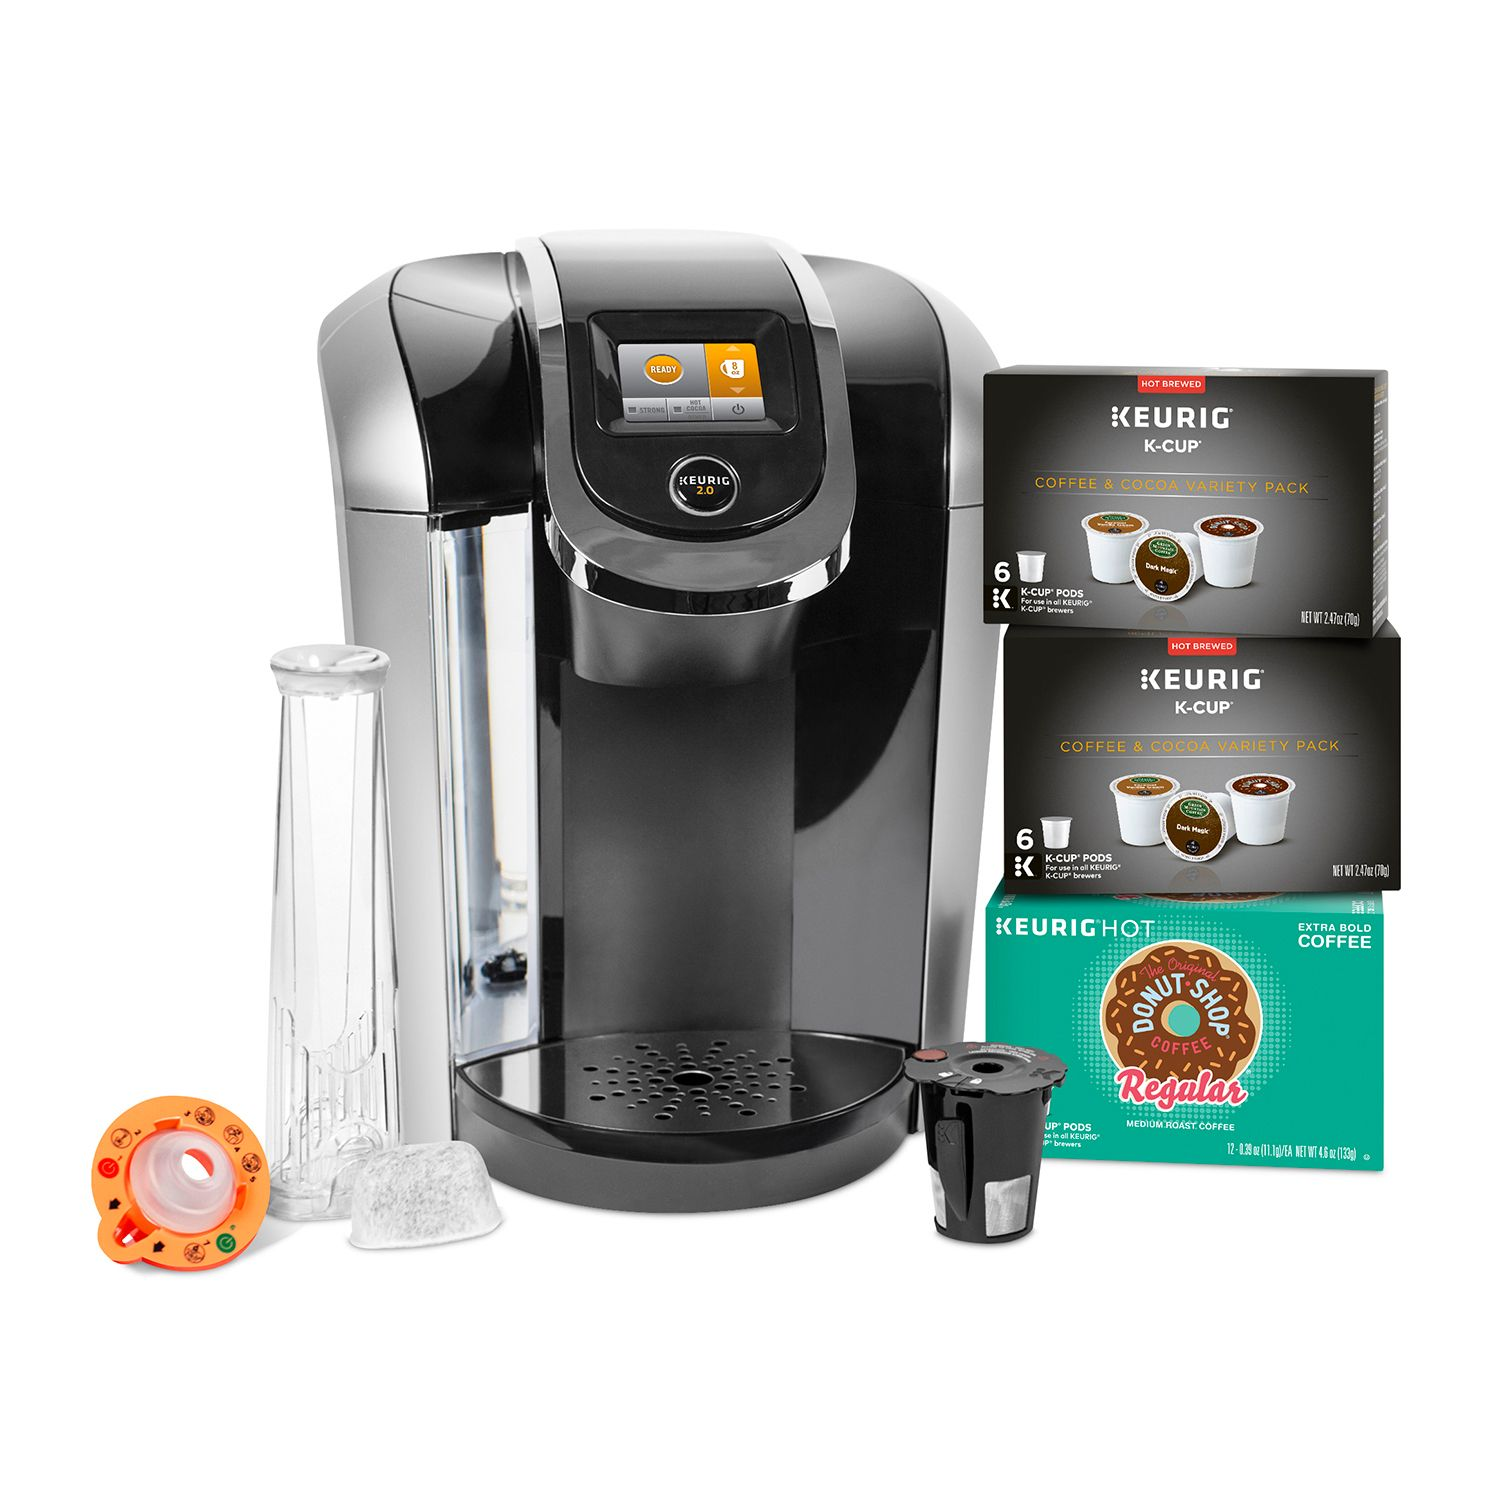 Keurig K425S Coffee Maker With 24 K Cup Pods And Reusable K Cup 2.0